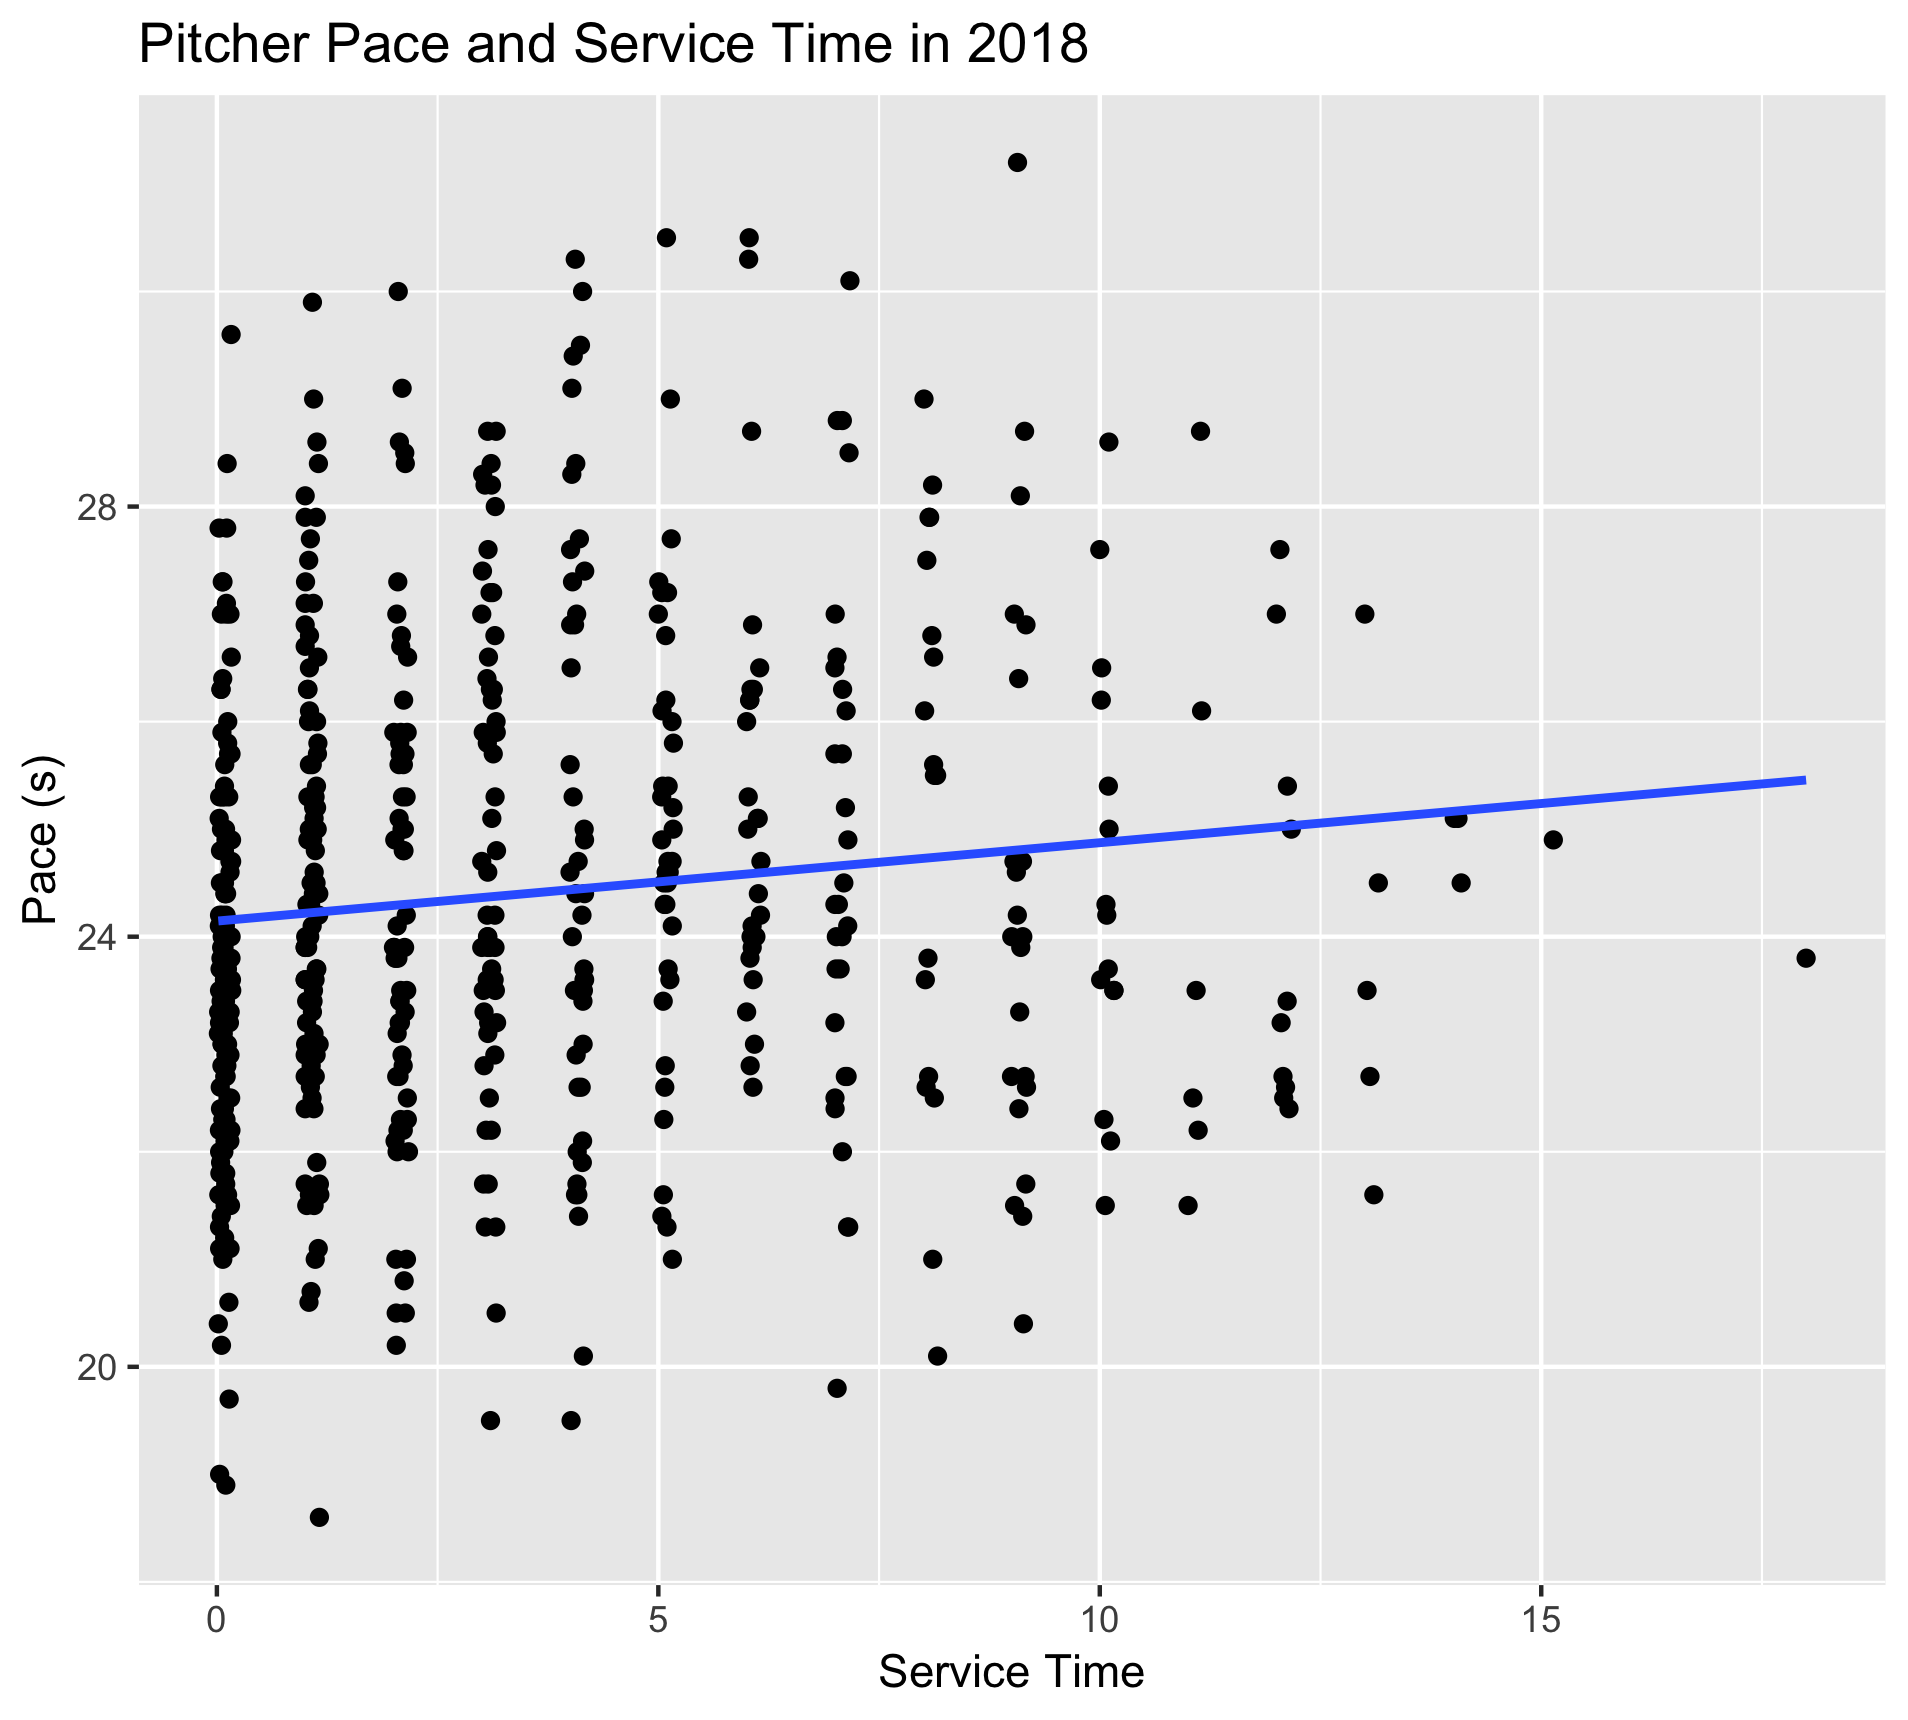 Pitcher service and pace